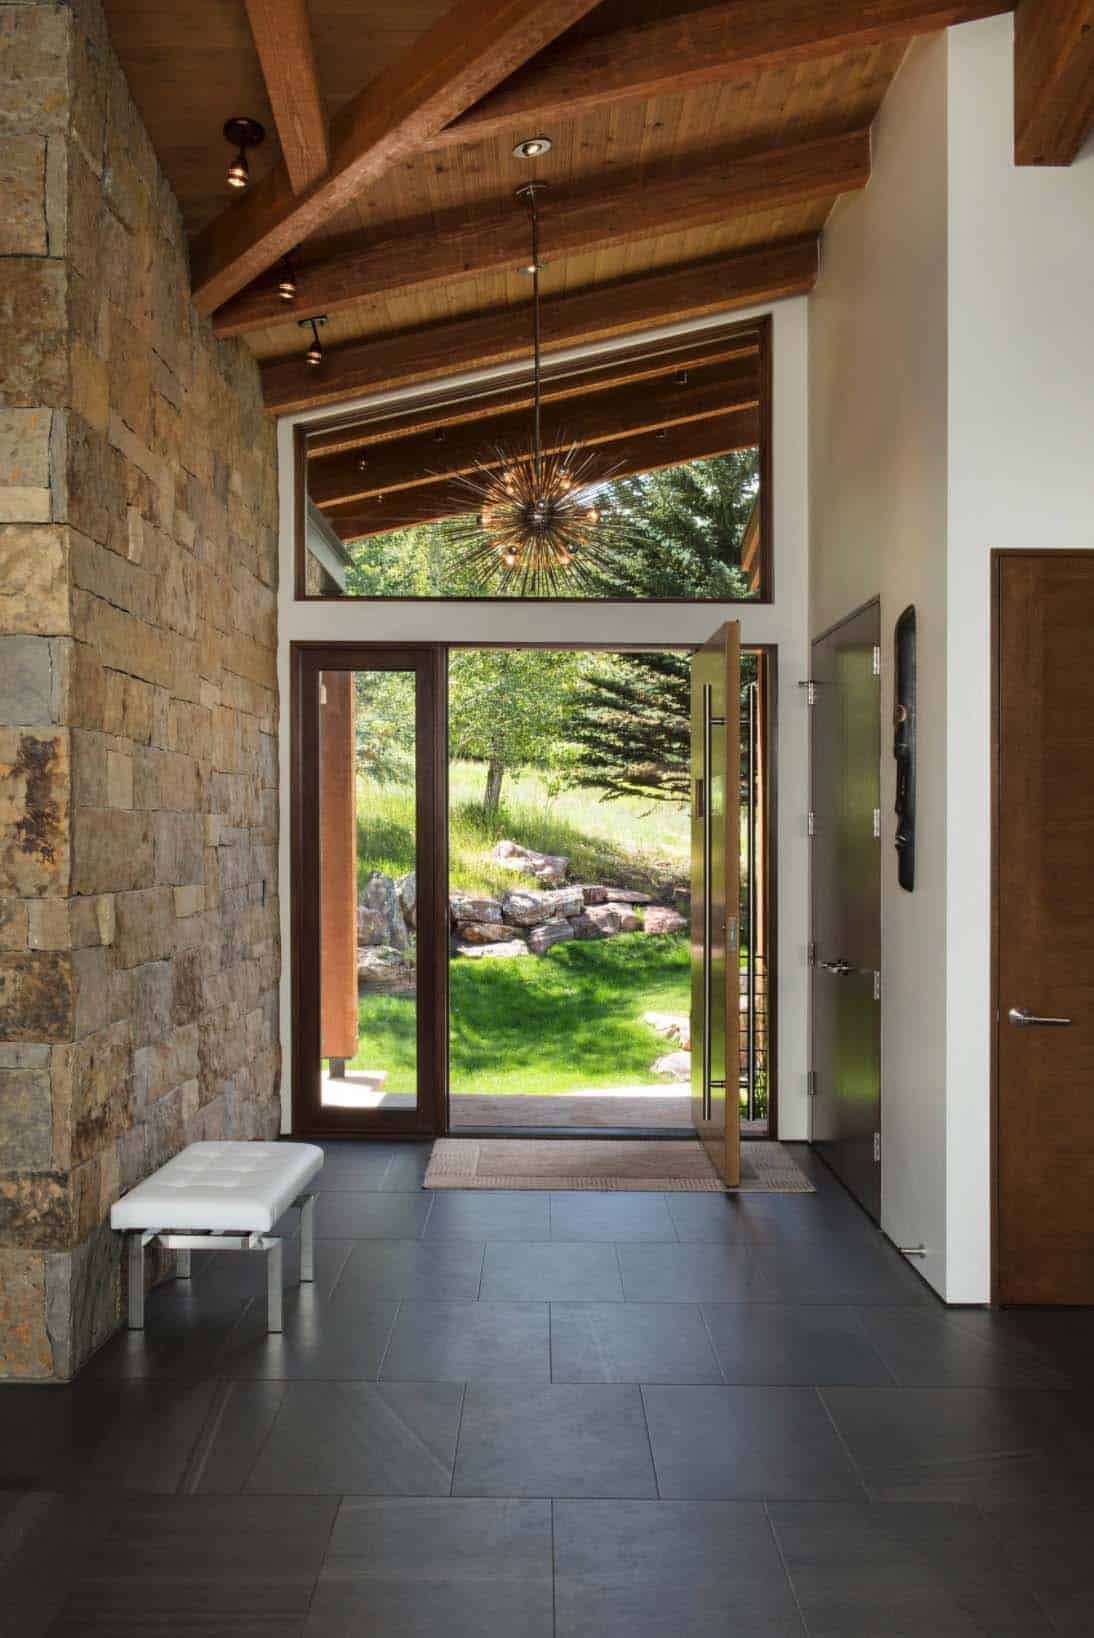 Contemporary Mountain Home Renovation-Berglund Architects-03-1 Kindesign